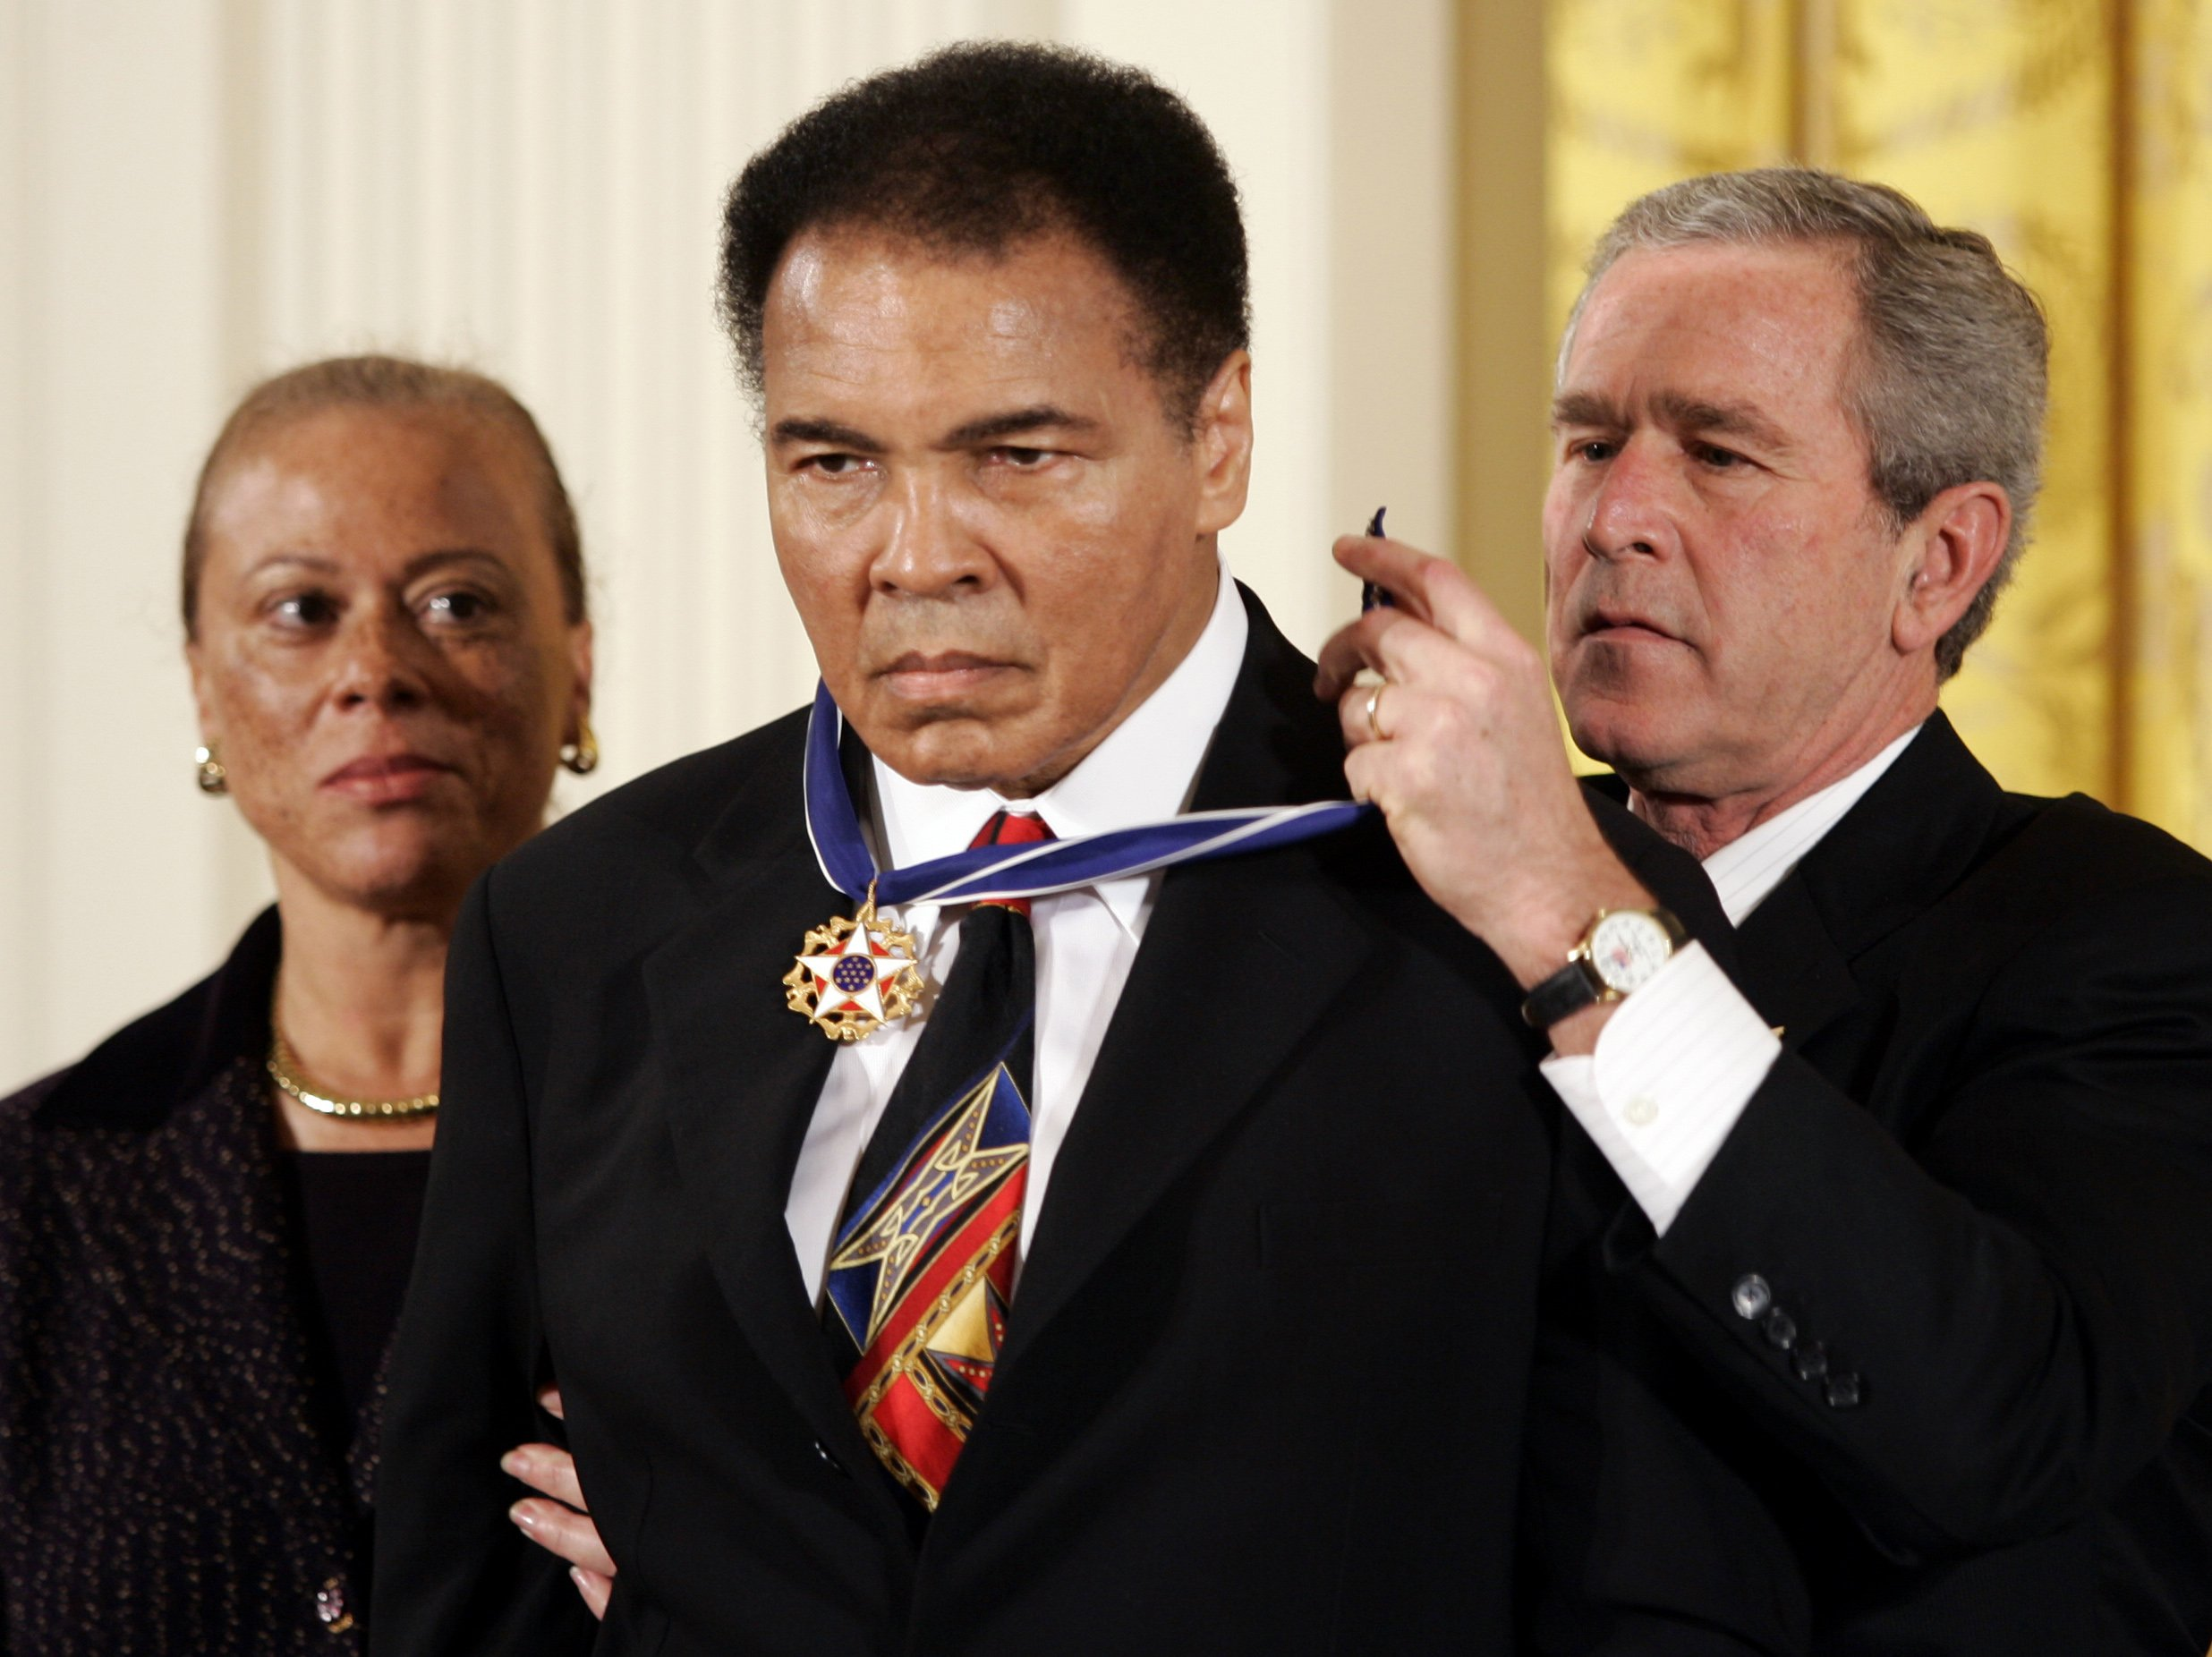 President George W. Bush awards boxing legend Muhammad Ali with the Presidential Medal of Freedom in Washington (Reuters Pictures)